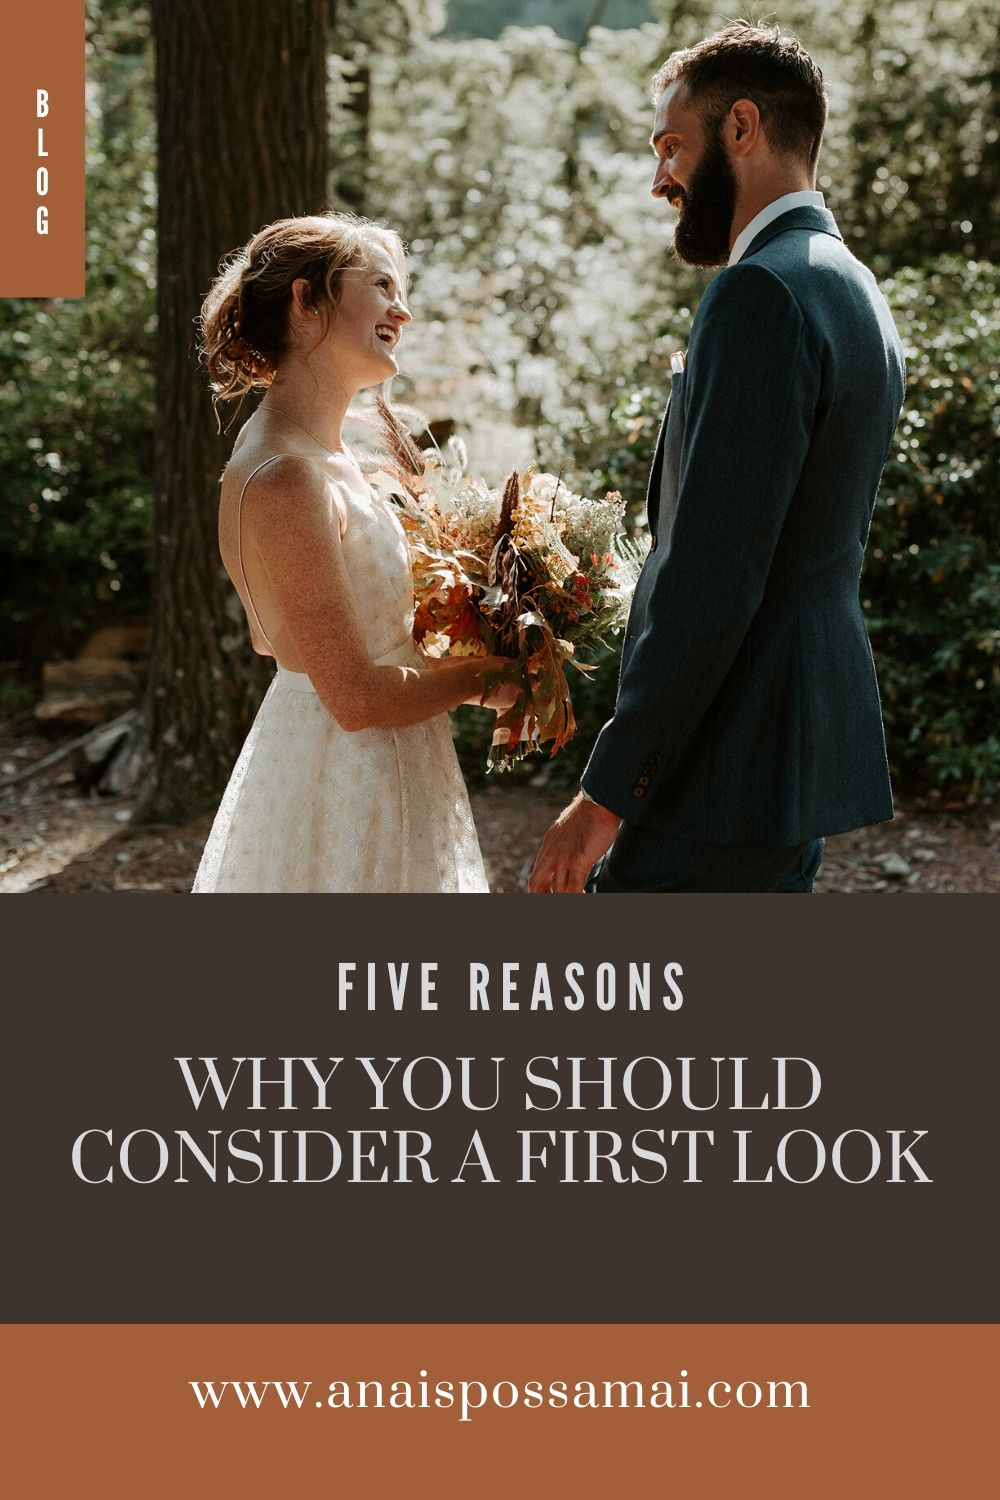 Why YOU SHOULd Consider A FirsT Look